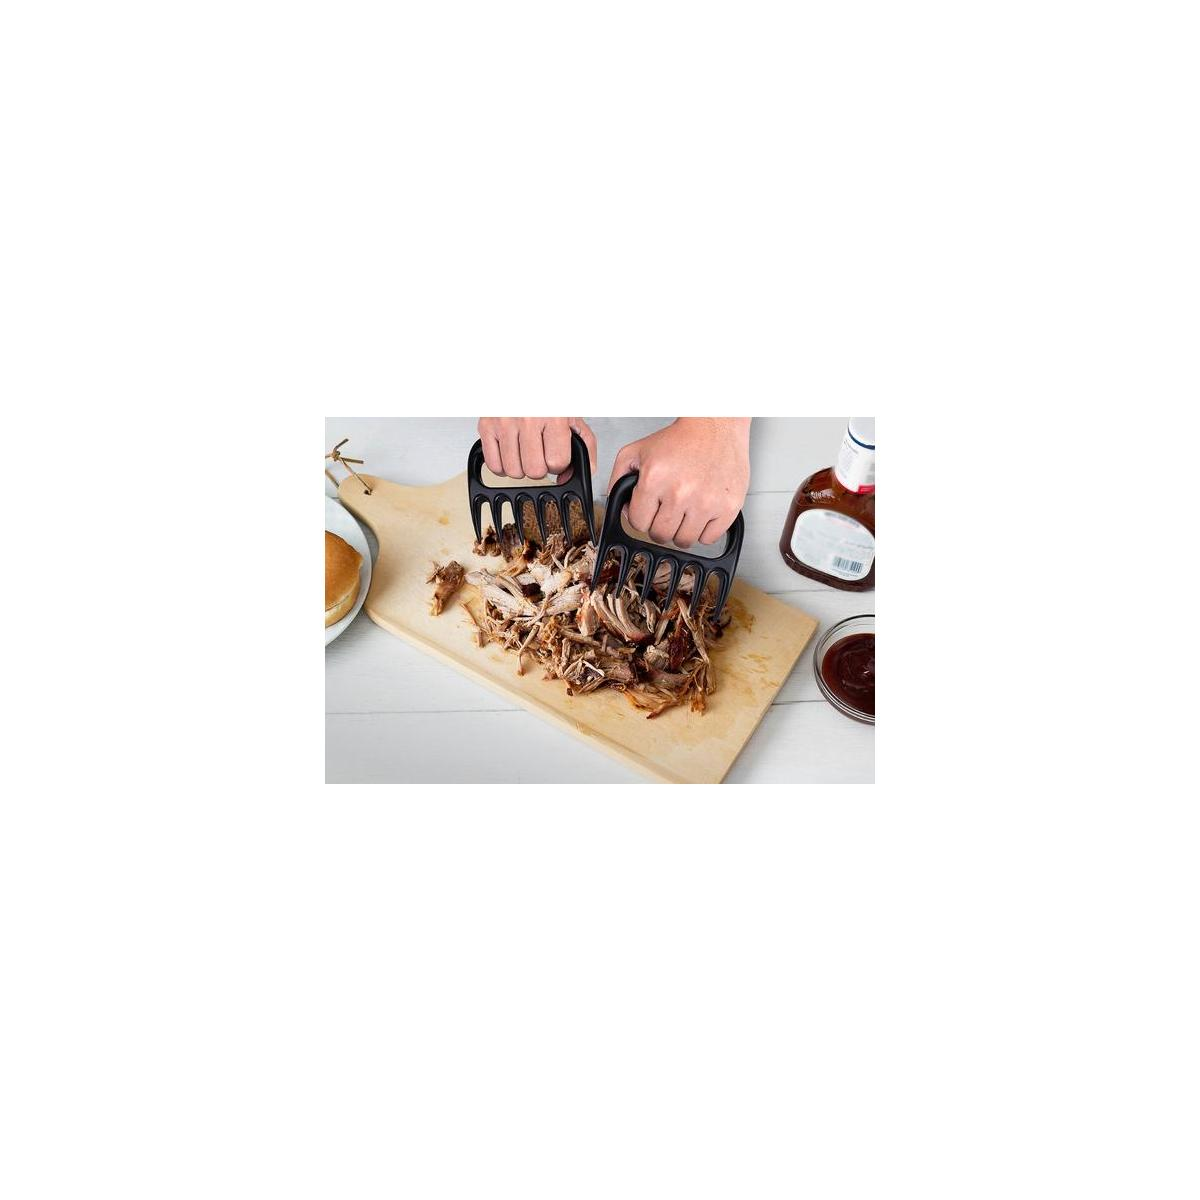 TEN-1 BBQ Gloves 932F Extreme Heat Resistant Grill Gloves for Outdoor Cooking with Bonus Meat Claws Pulled Pork Shredder and Olive Oil Sprayer Glass Bottle